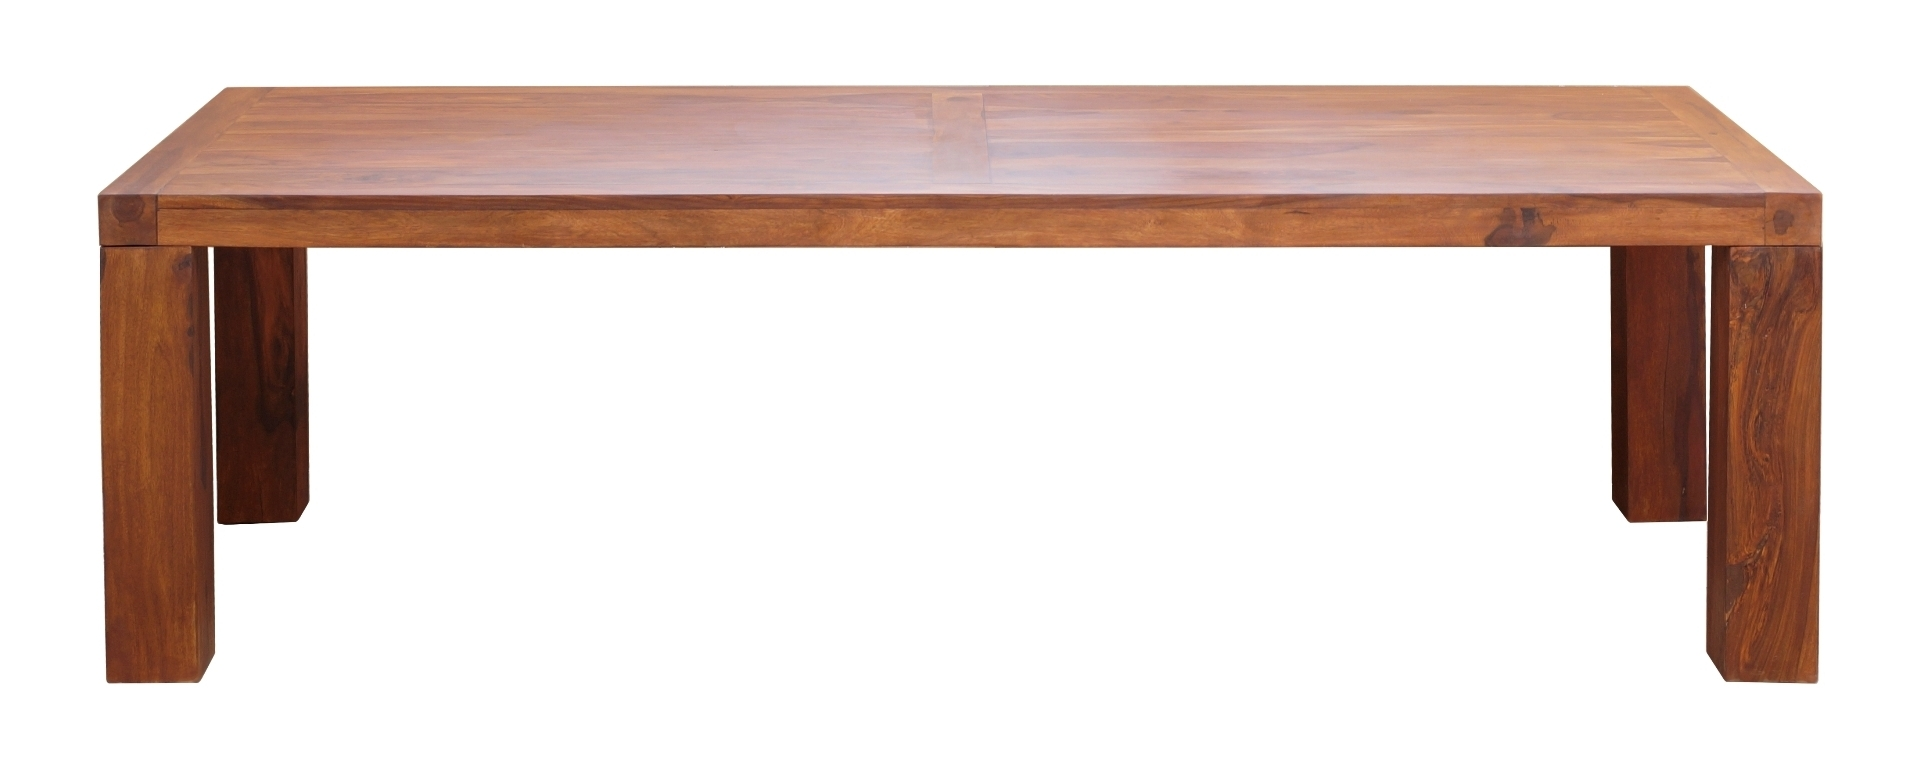 Best And Newest Rio Slab Dining Table Thick Leg – Umaid Craftorium Within Rio Dining Tables (View 7 of 25)